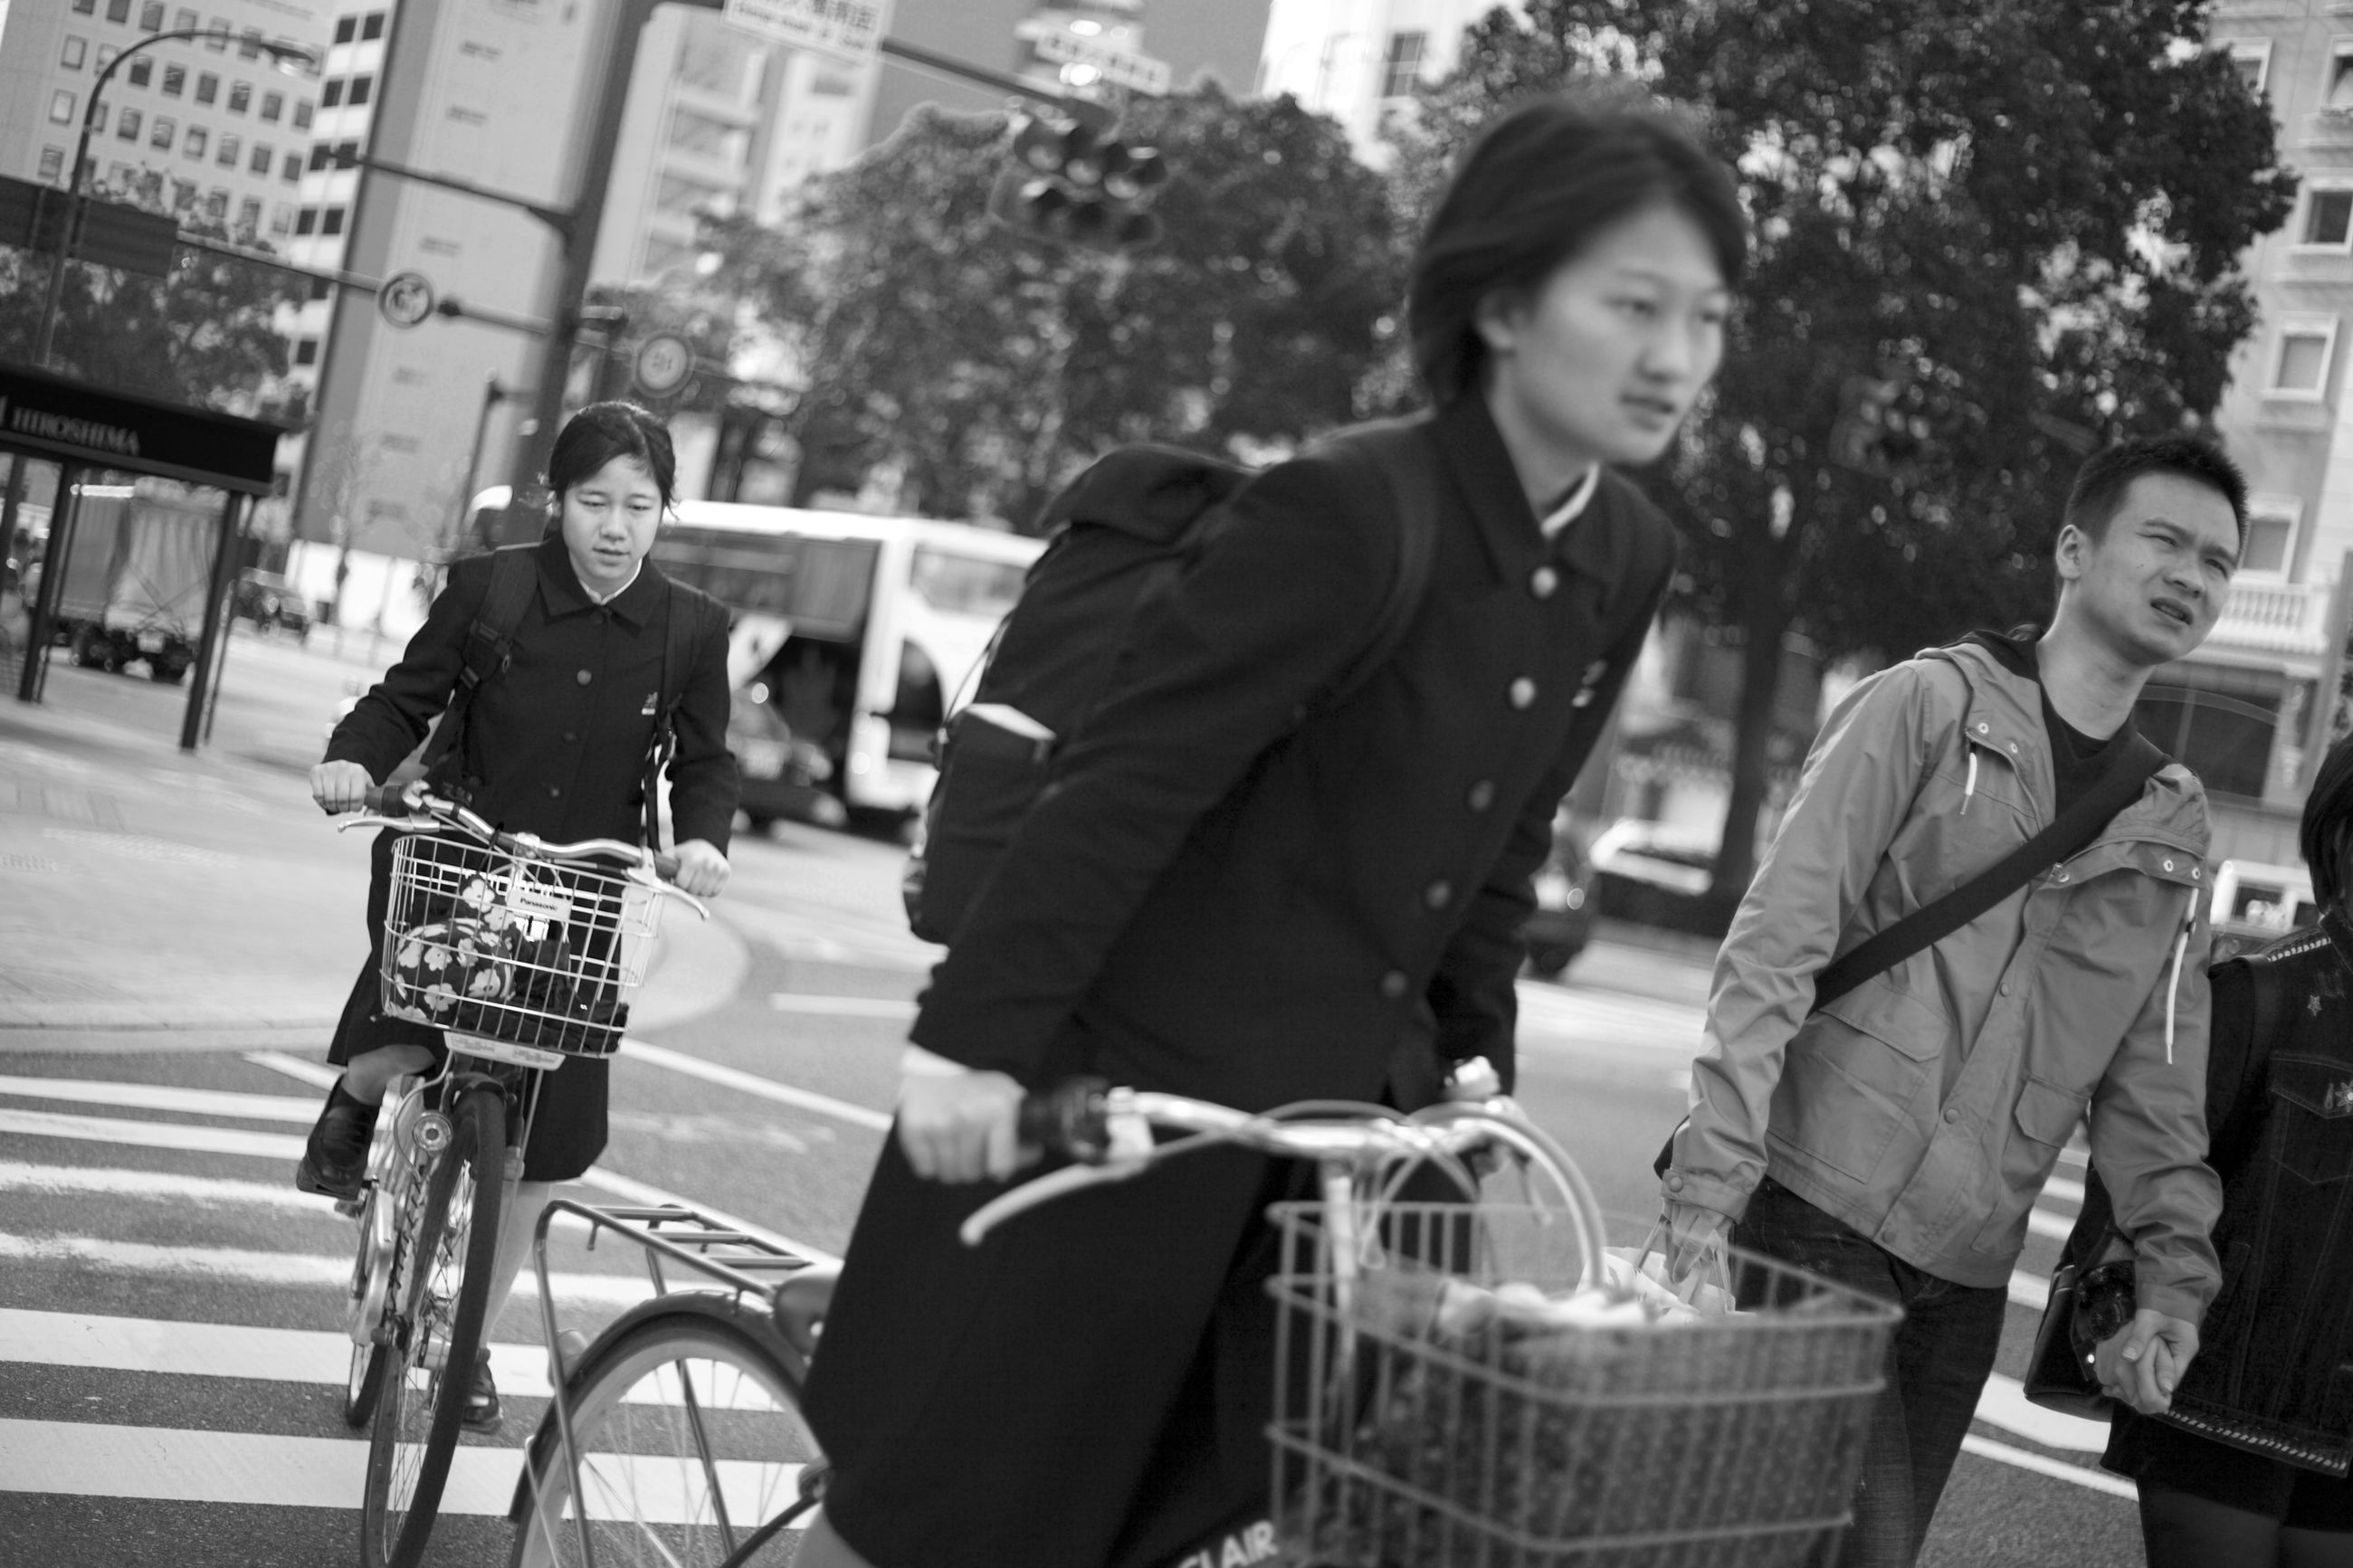 bicycle, city, real people, transportation, adult, men, lifestyles, focus on foreground, casual clothing, street, young adult, architecture, people, women, incidental people, day, mode of transportation, bag, basket, outdoors, riding